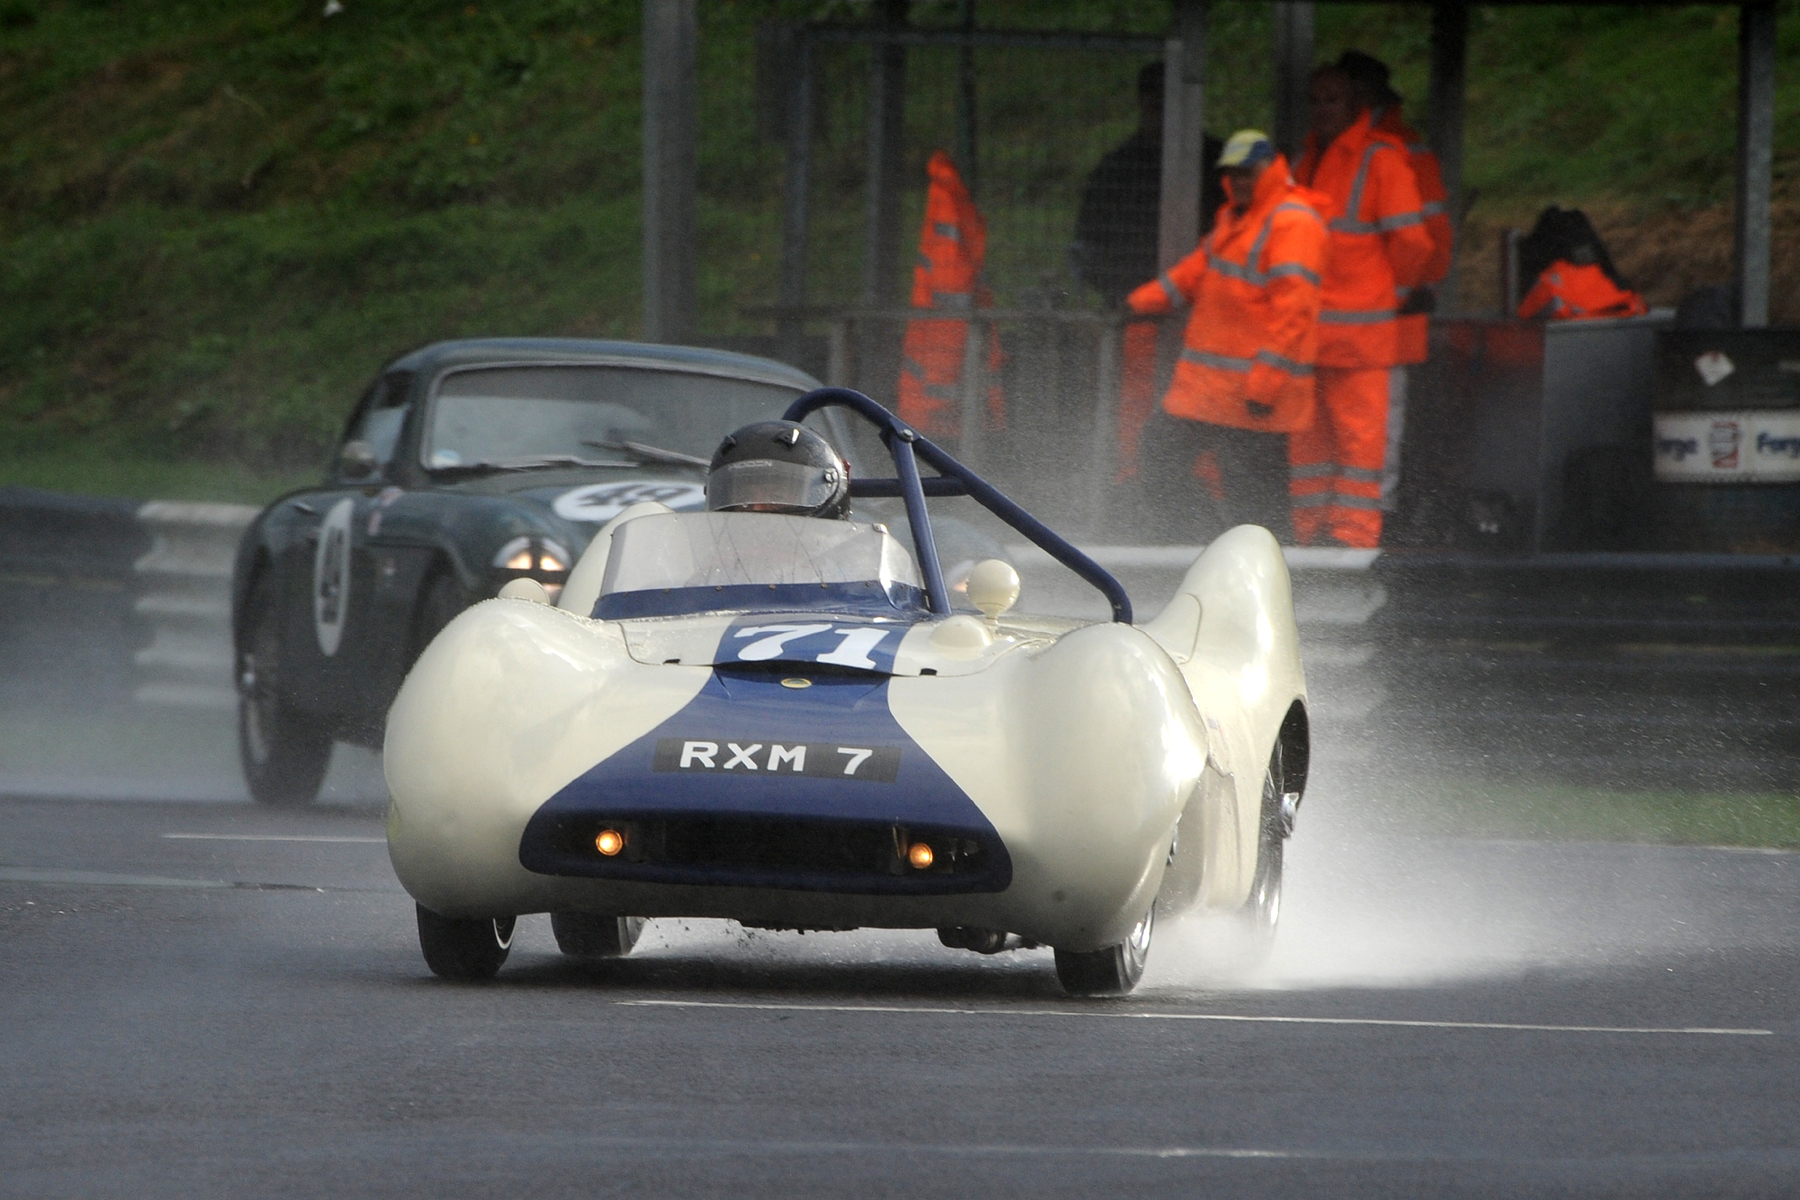 Chris Woodgate starts to close in on Brian Arculus in the little Lotus                                       Photo - Jeff Bloxham